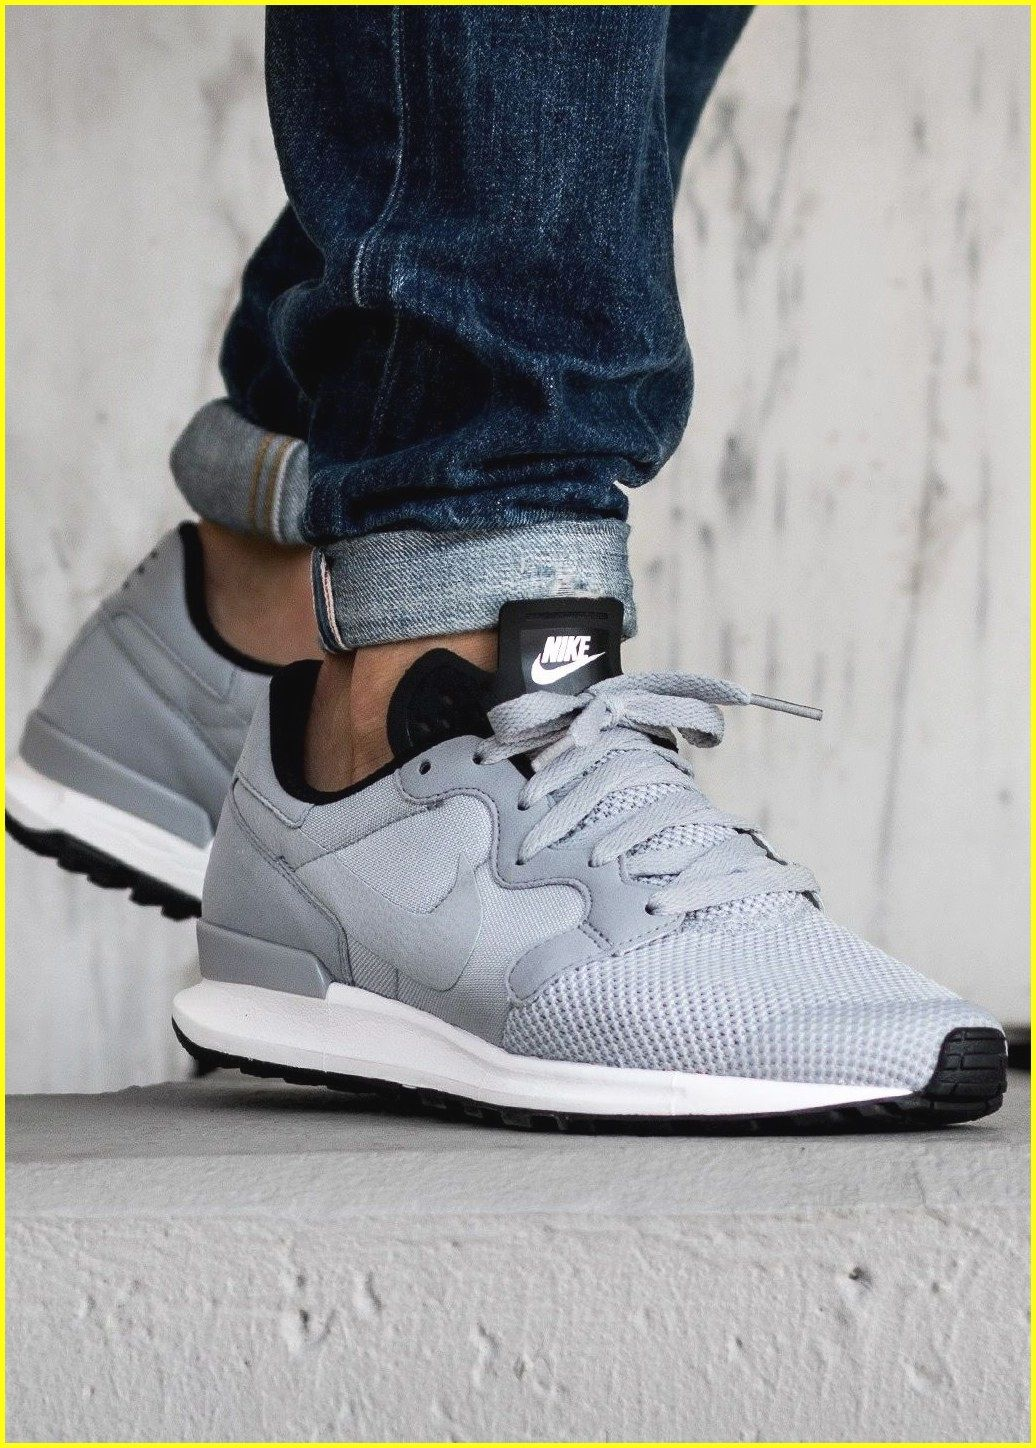 83cd1483a32 Mens Fashion Sneakers Searching for more information on sneakers